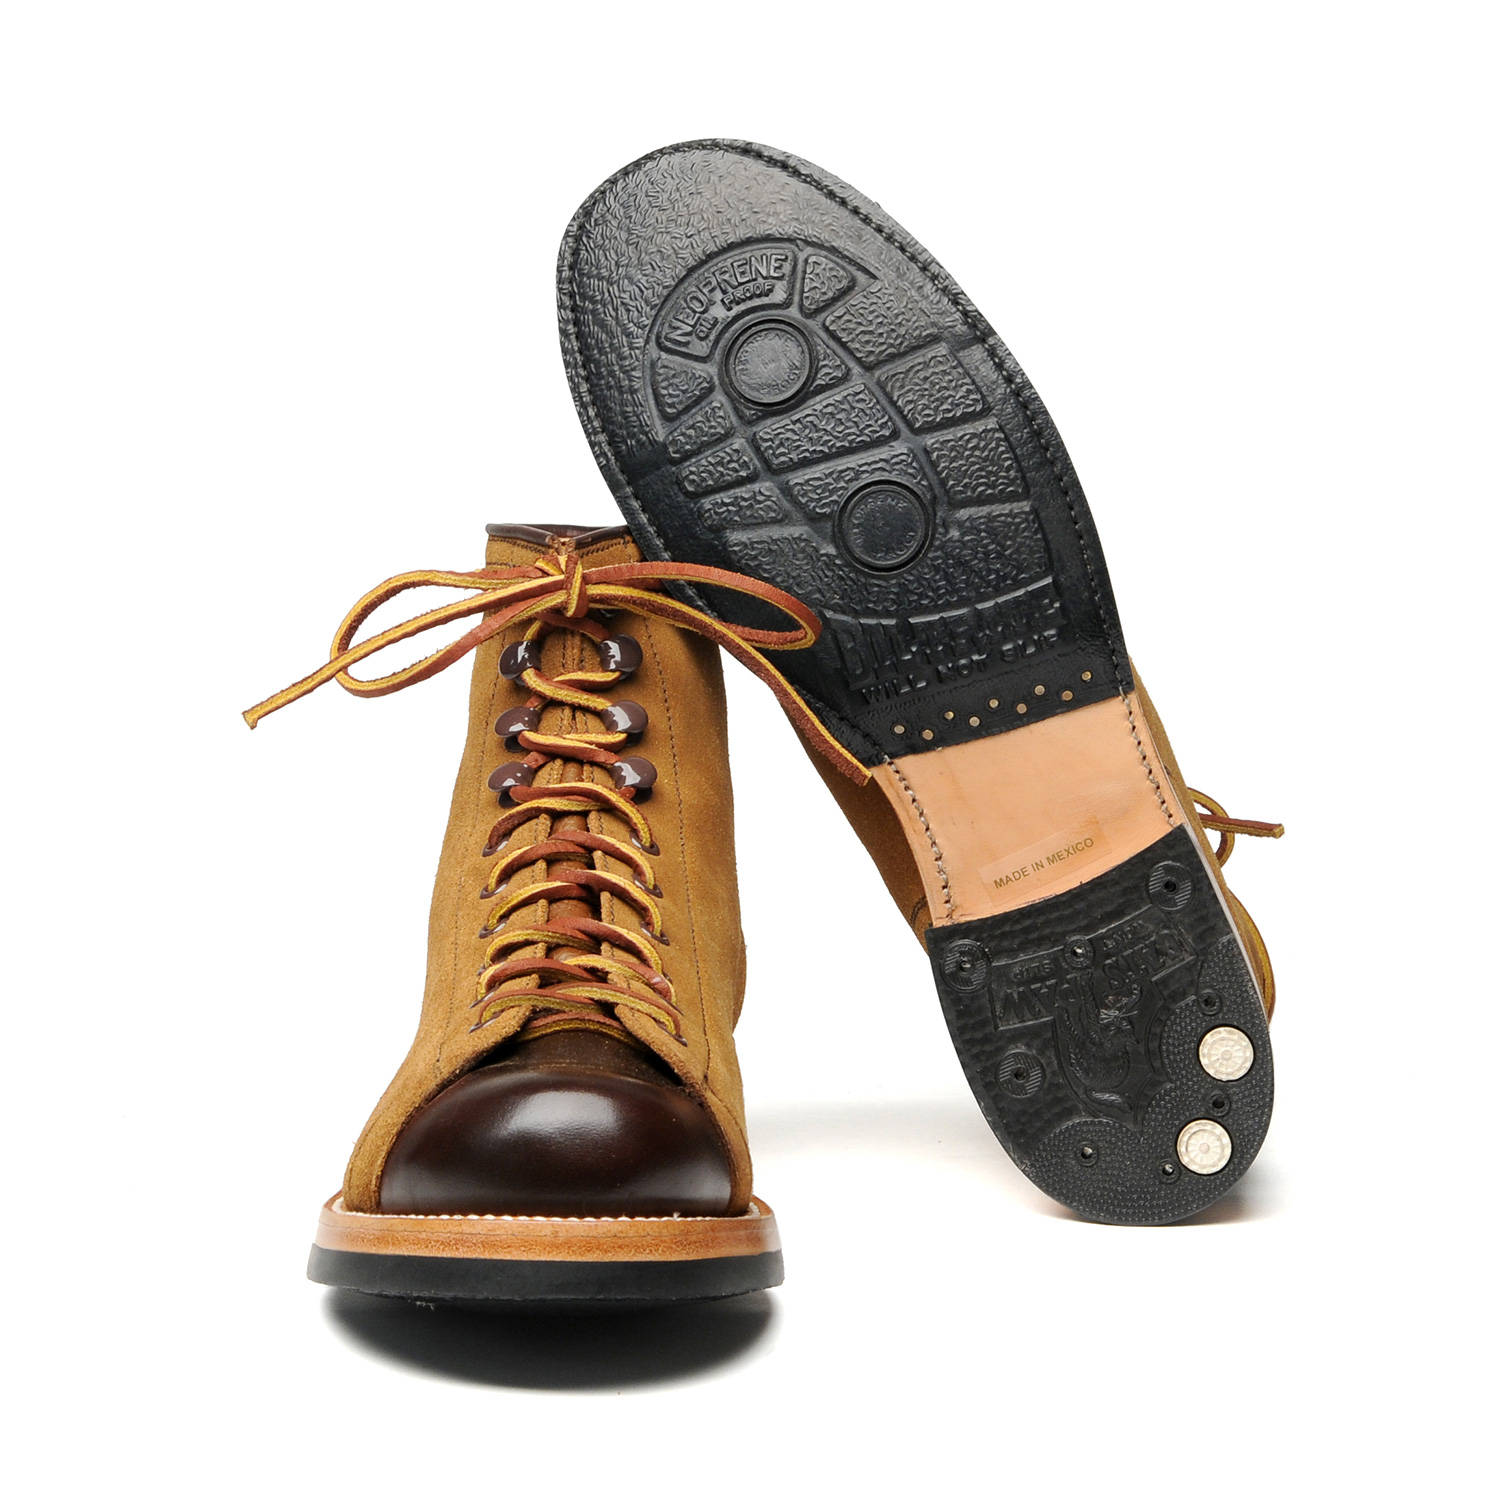 POLISH-WORK-BOOT,-CC-BROWN-X-G-BROWN-SUEDE,-OUTSOLE.jpg